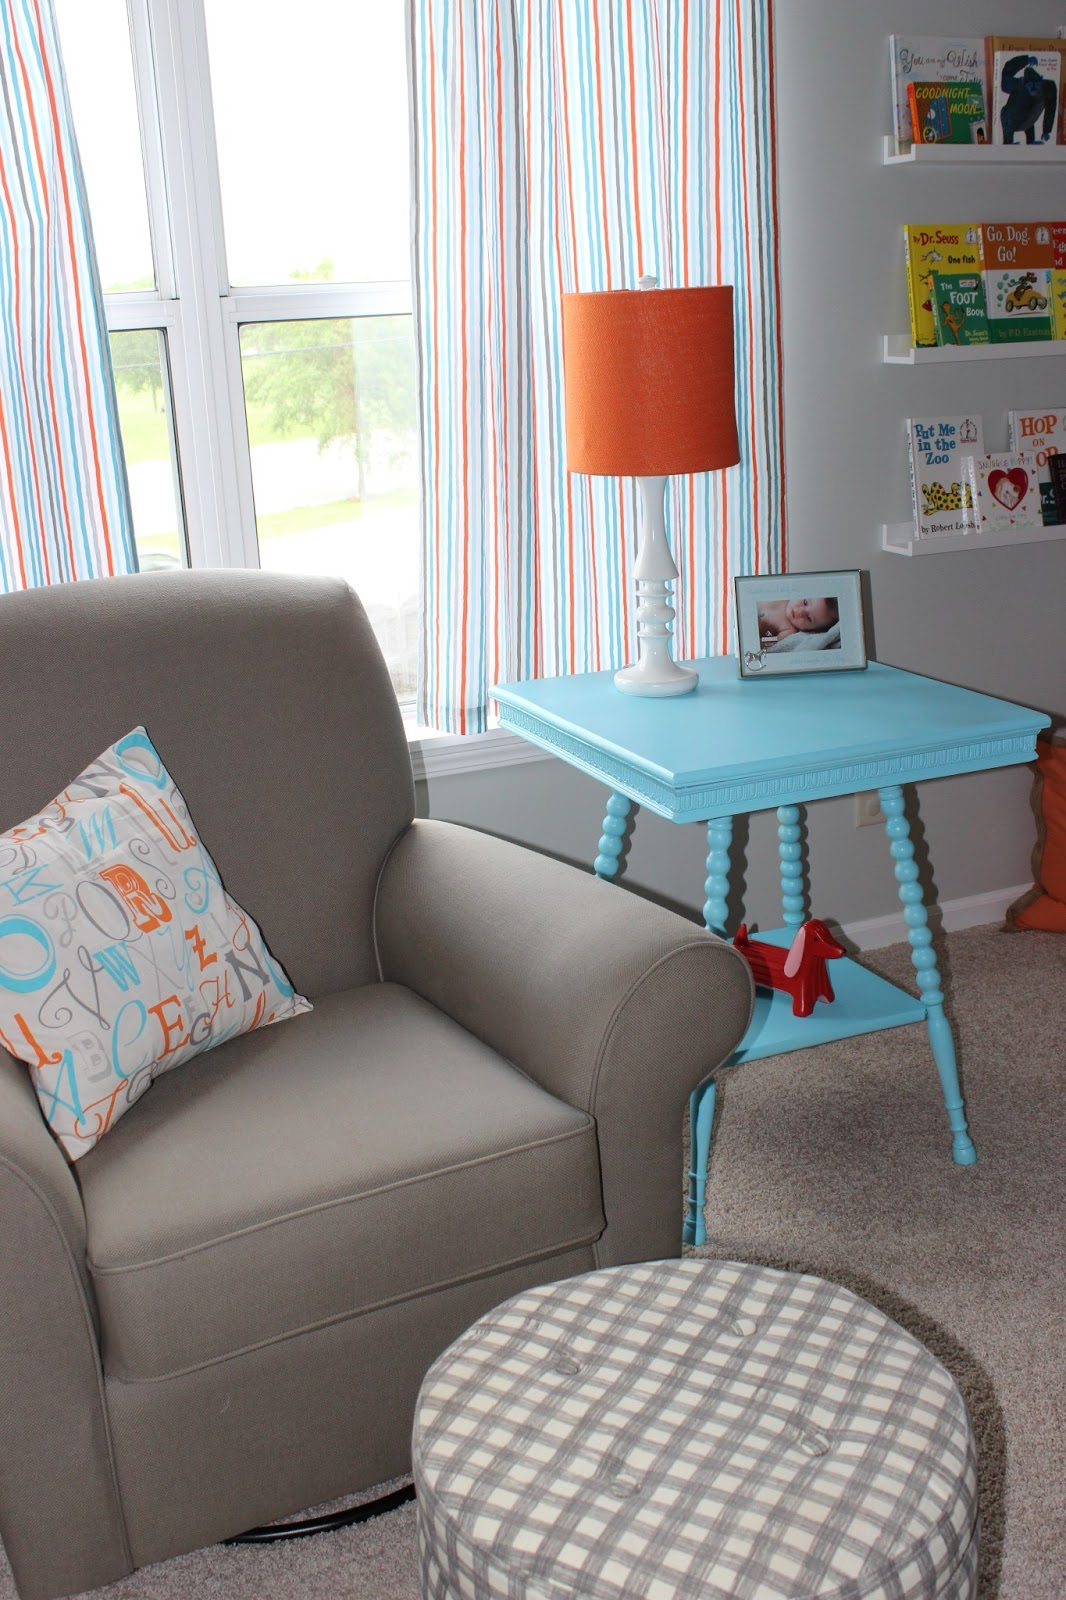 We Recently Finished This Project Where We Added A Dormer To The Home: Project Nursery:Quick & Easy Aqua End Table Makeover